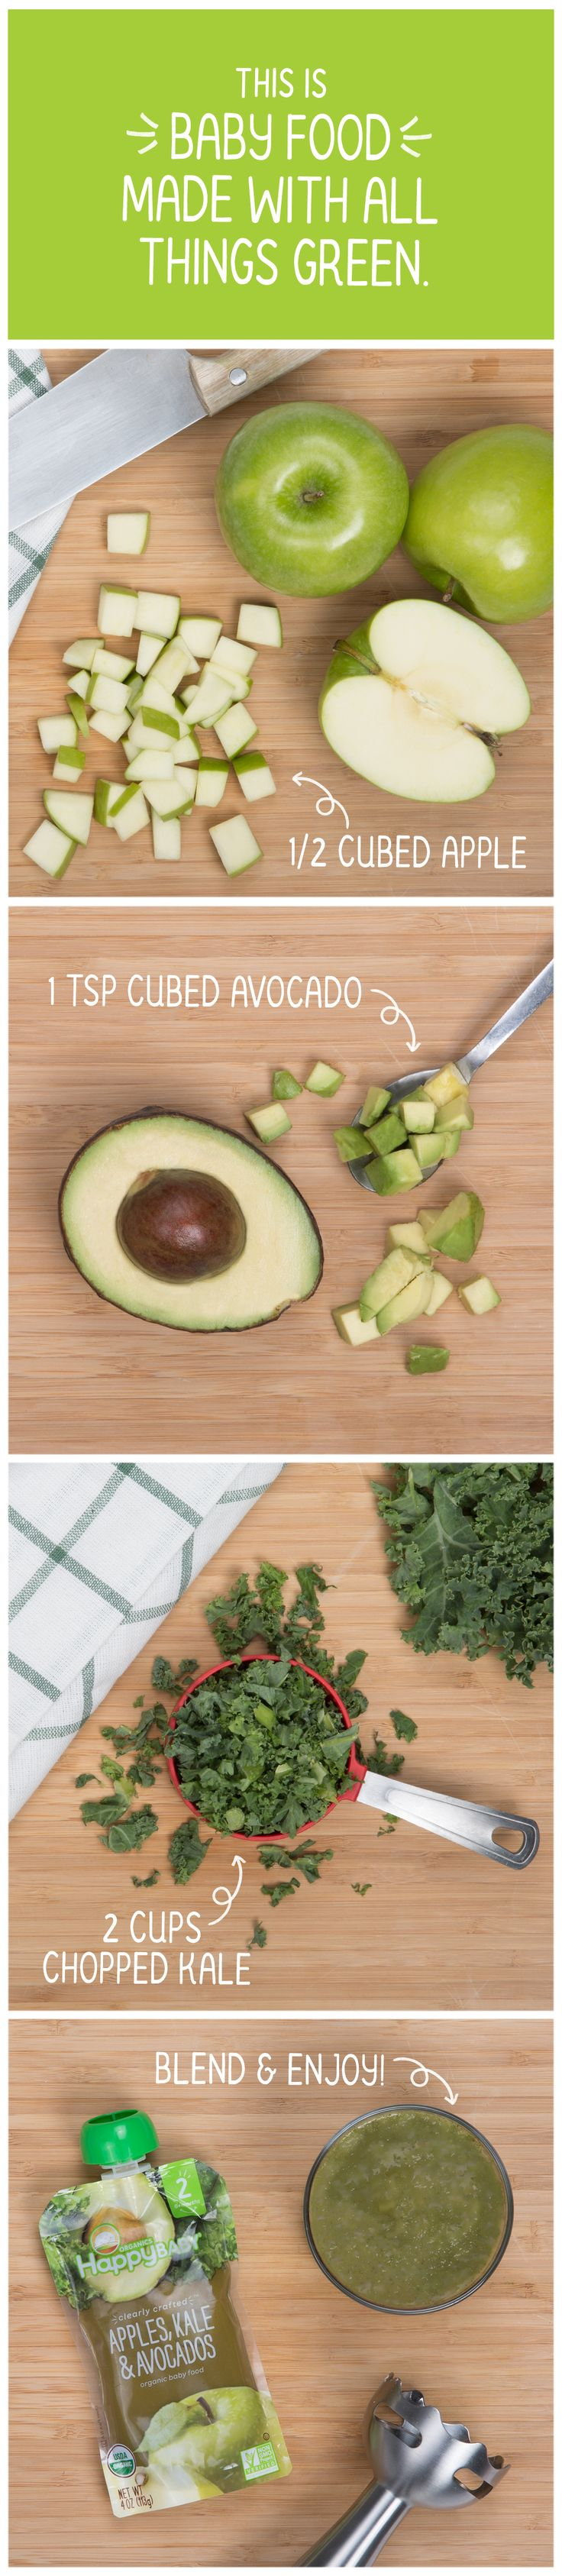 Our organic Apples, Kale & Avocados recipe calls for crisp apples from Italy, creamy avocados from their native Peru, and vitamin rich kale from California's Grimmway Farms. Learn more about where we source every ingredient in our new Happy Baby #ClearlyCrafted pouches: http://happyfamilybrands.com/introducing-clearly-crafted/?utm_source=Pinterest&utm_medium=All%20Targets%20%2B%20Text%20Link&utm_content=Recipes%20AKA&utm_campaign=Clearly%20Crafted%20Pinterest%20